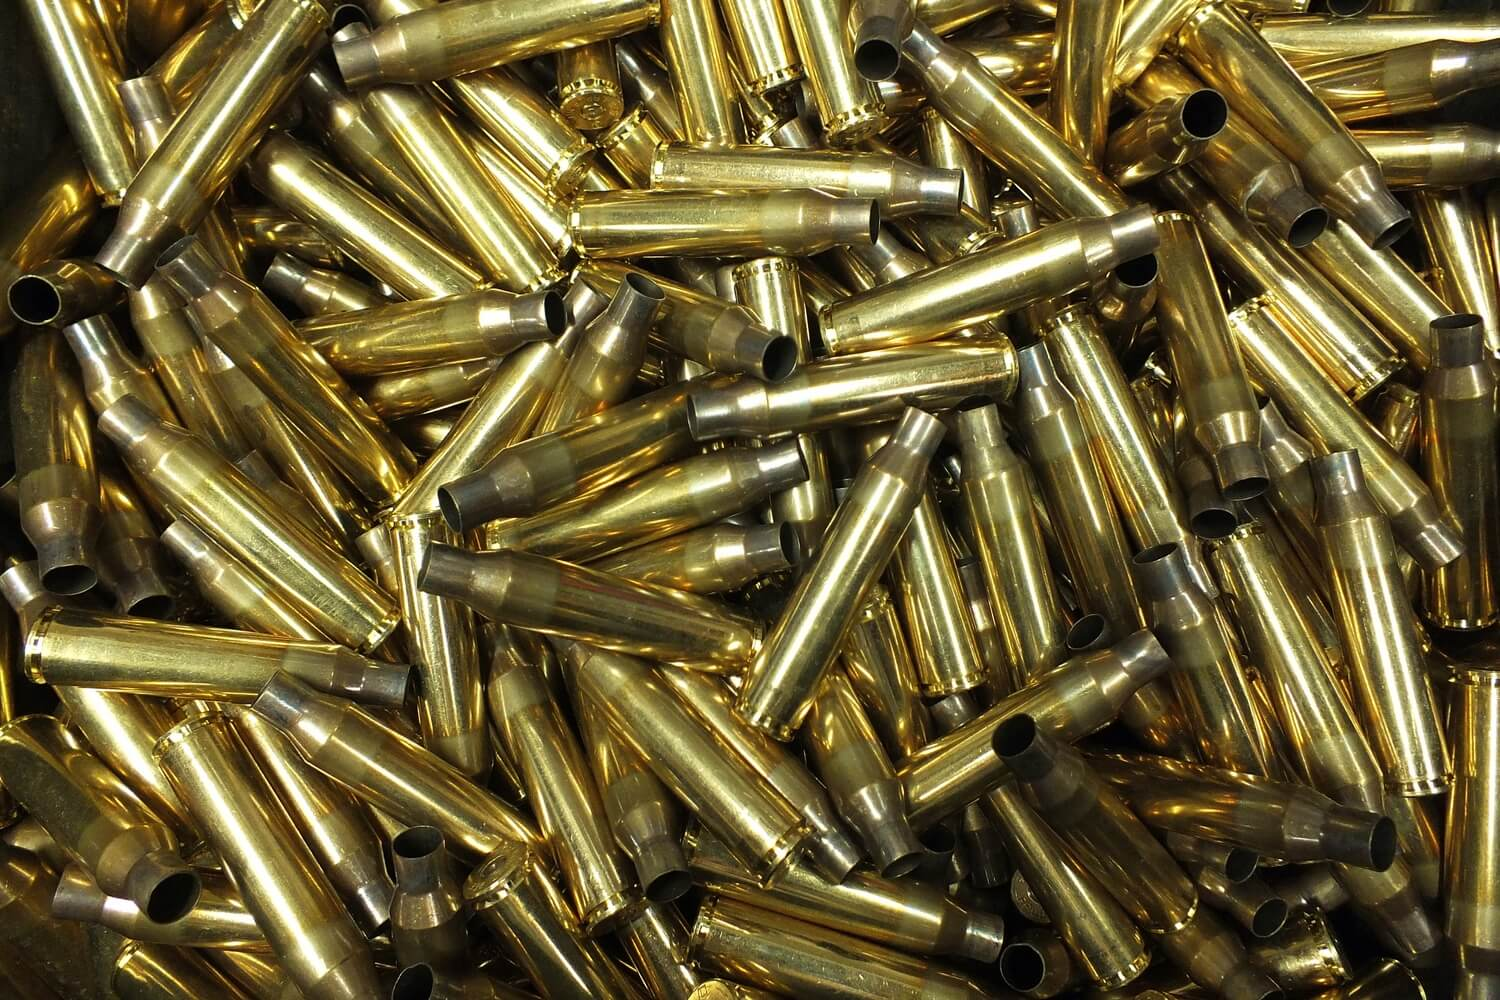 Reload! OTM Tactical's Fine Selection of Reloading Brass